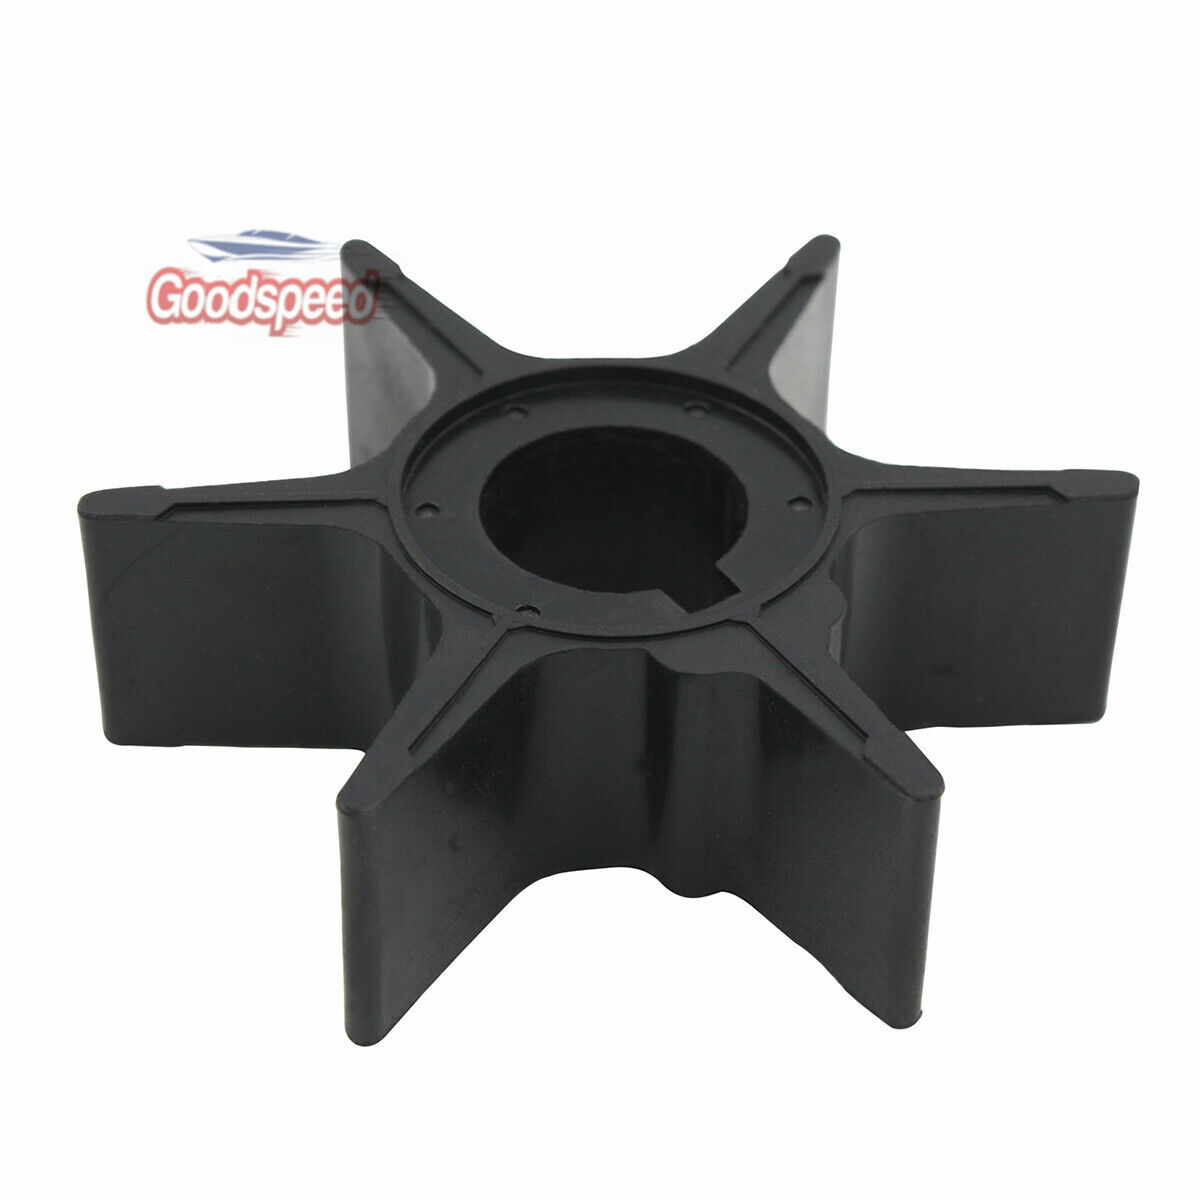 Water pump Impeller for Suzuki outboard 50 75 85 HP  2 stroke 17461-95300//301